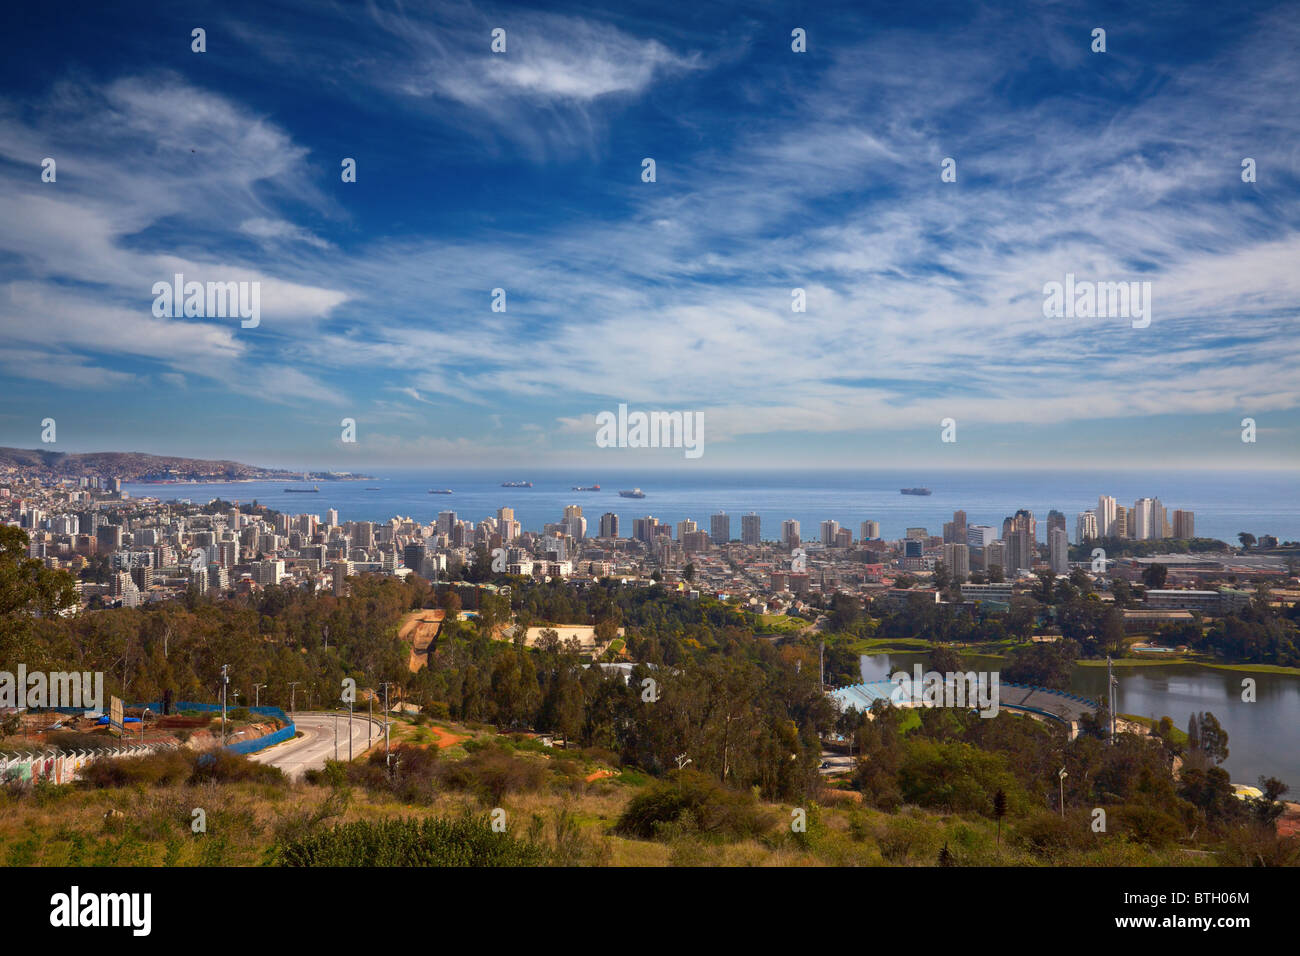 view on Vina del Mar and Valparaiso, Chile - Stock Image